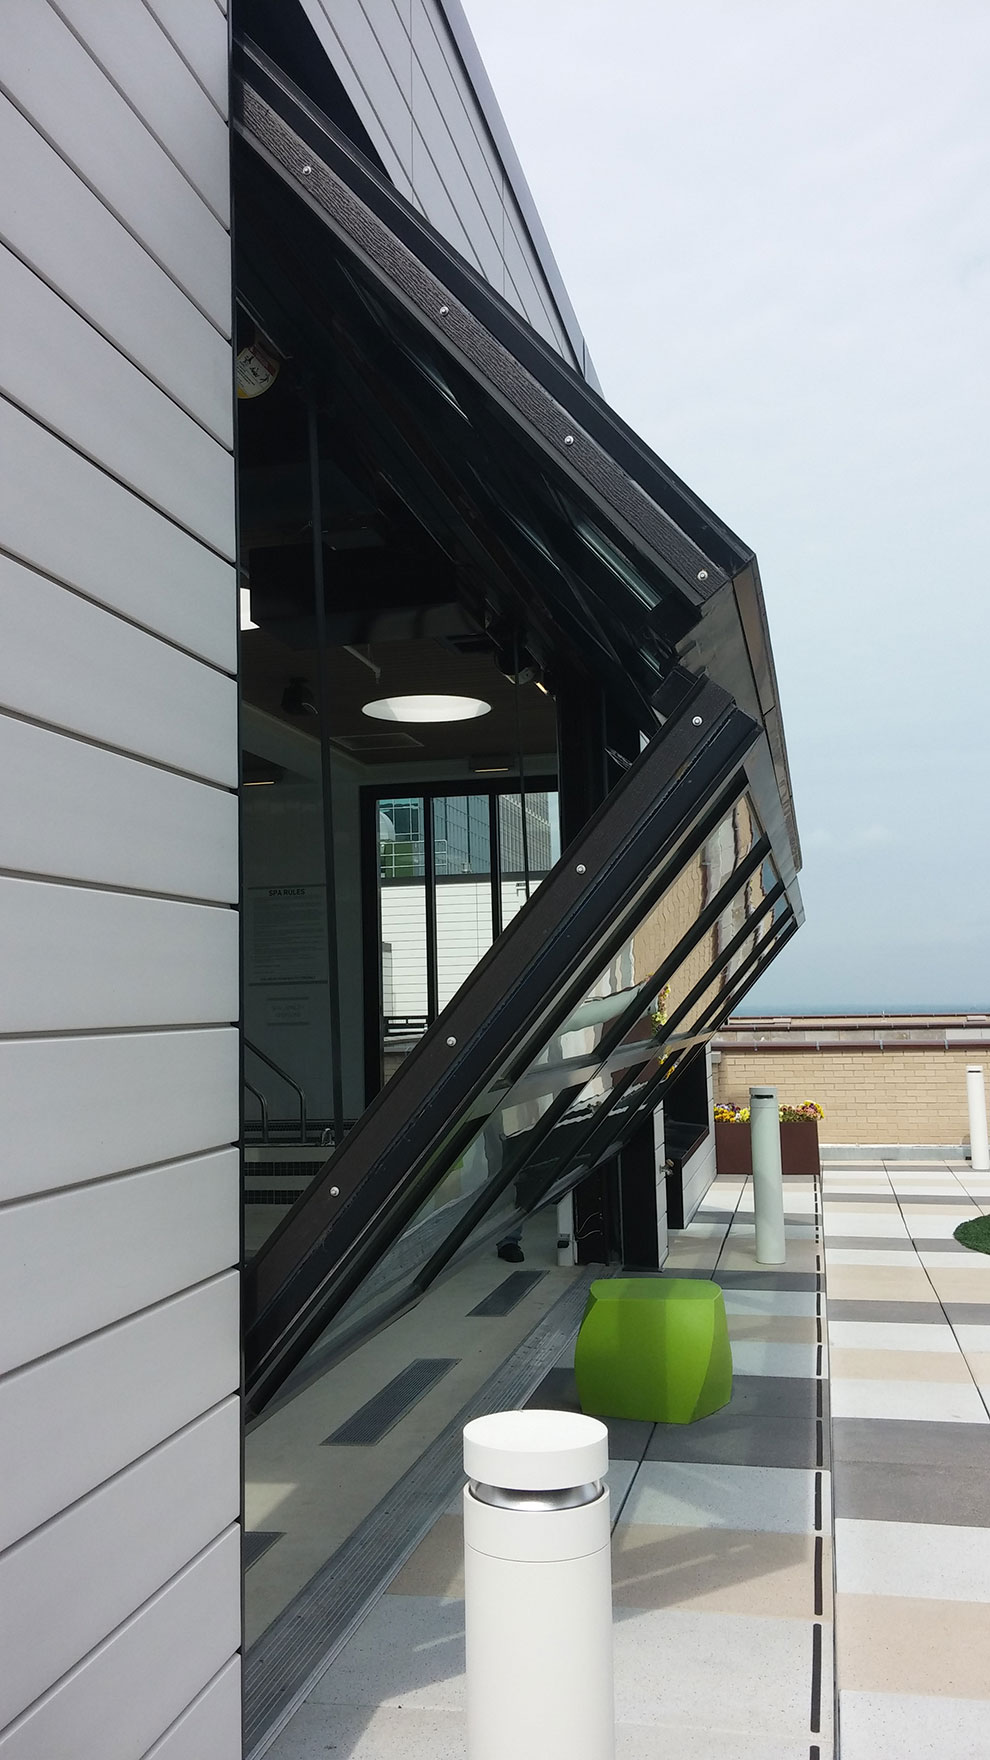 Soo Line Apartments has an awning when the Lift-Strap Door is open